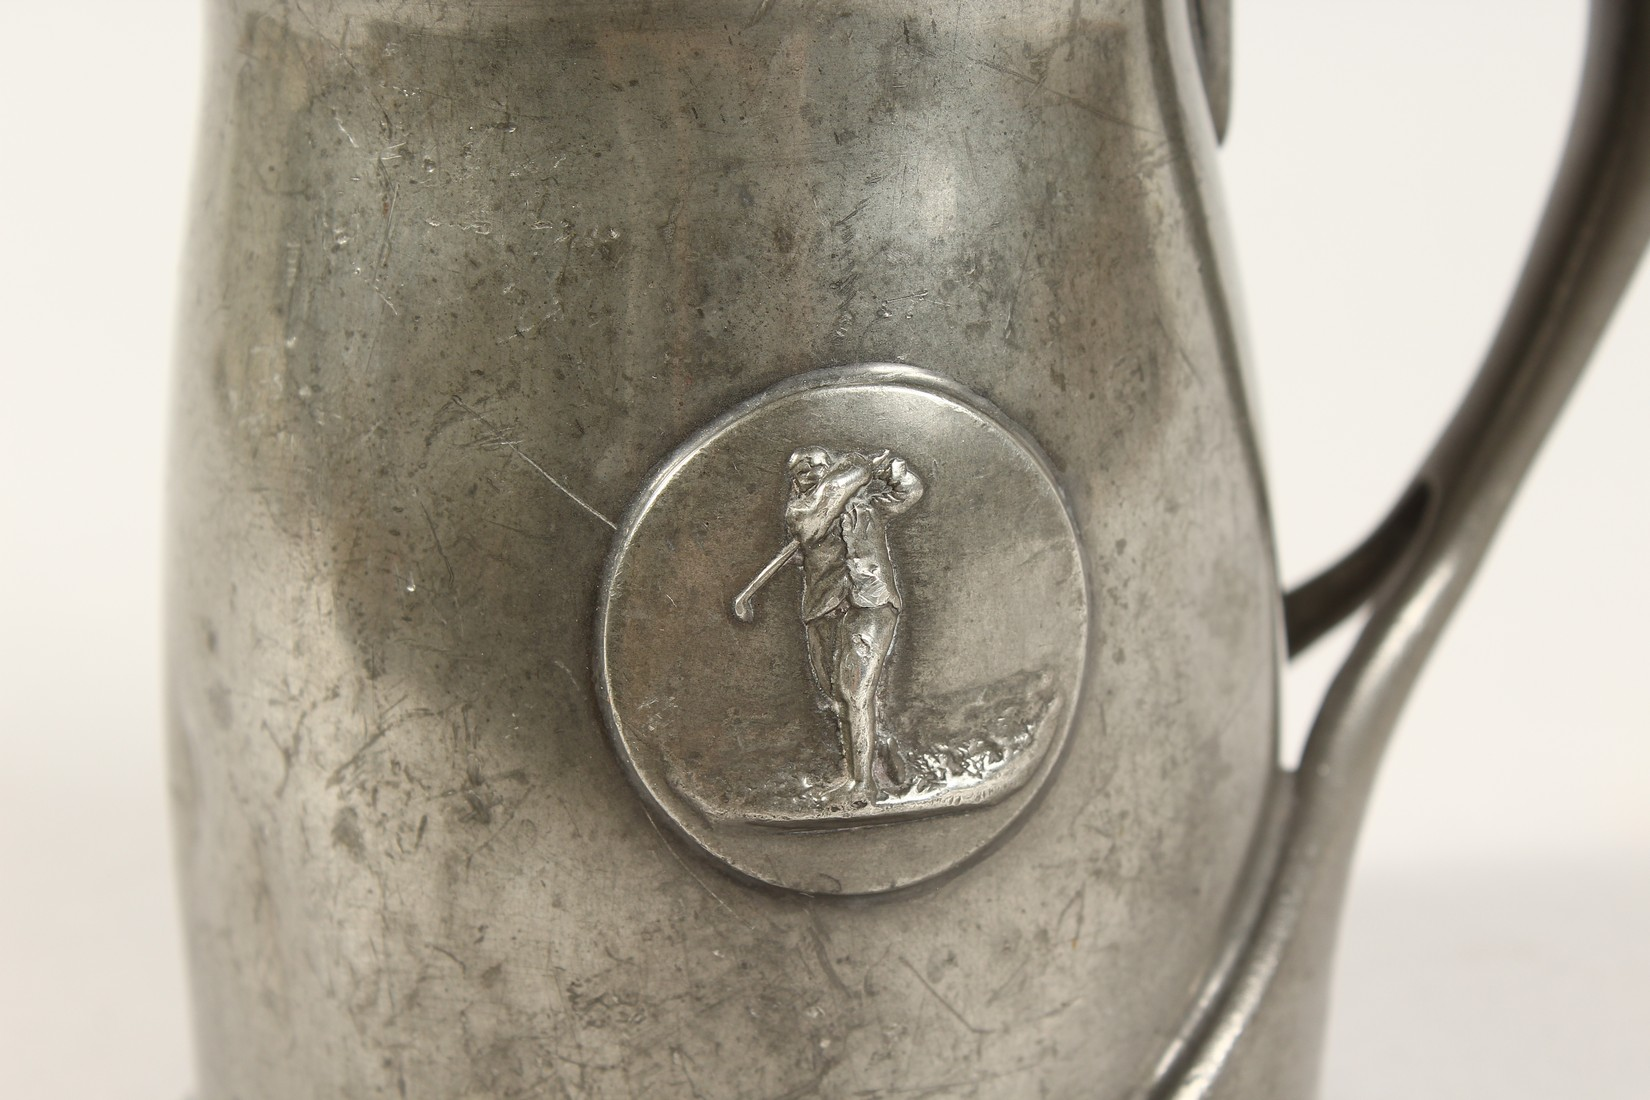 A TUDRIC ARCHIBALD KNOX PEWTER TANKARD with an oval of a golfer No. 066 4.25ins high. - Image 2 of 6